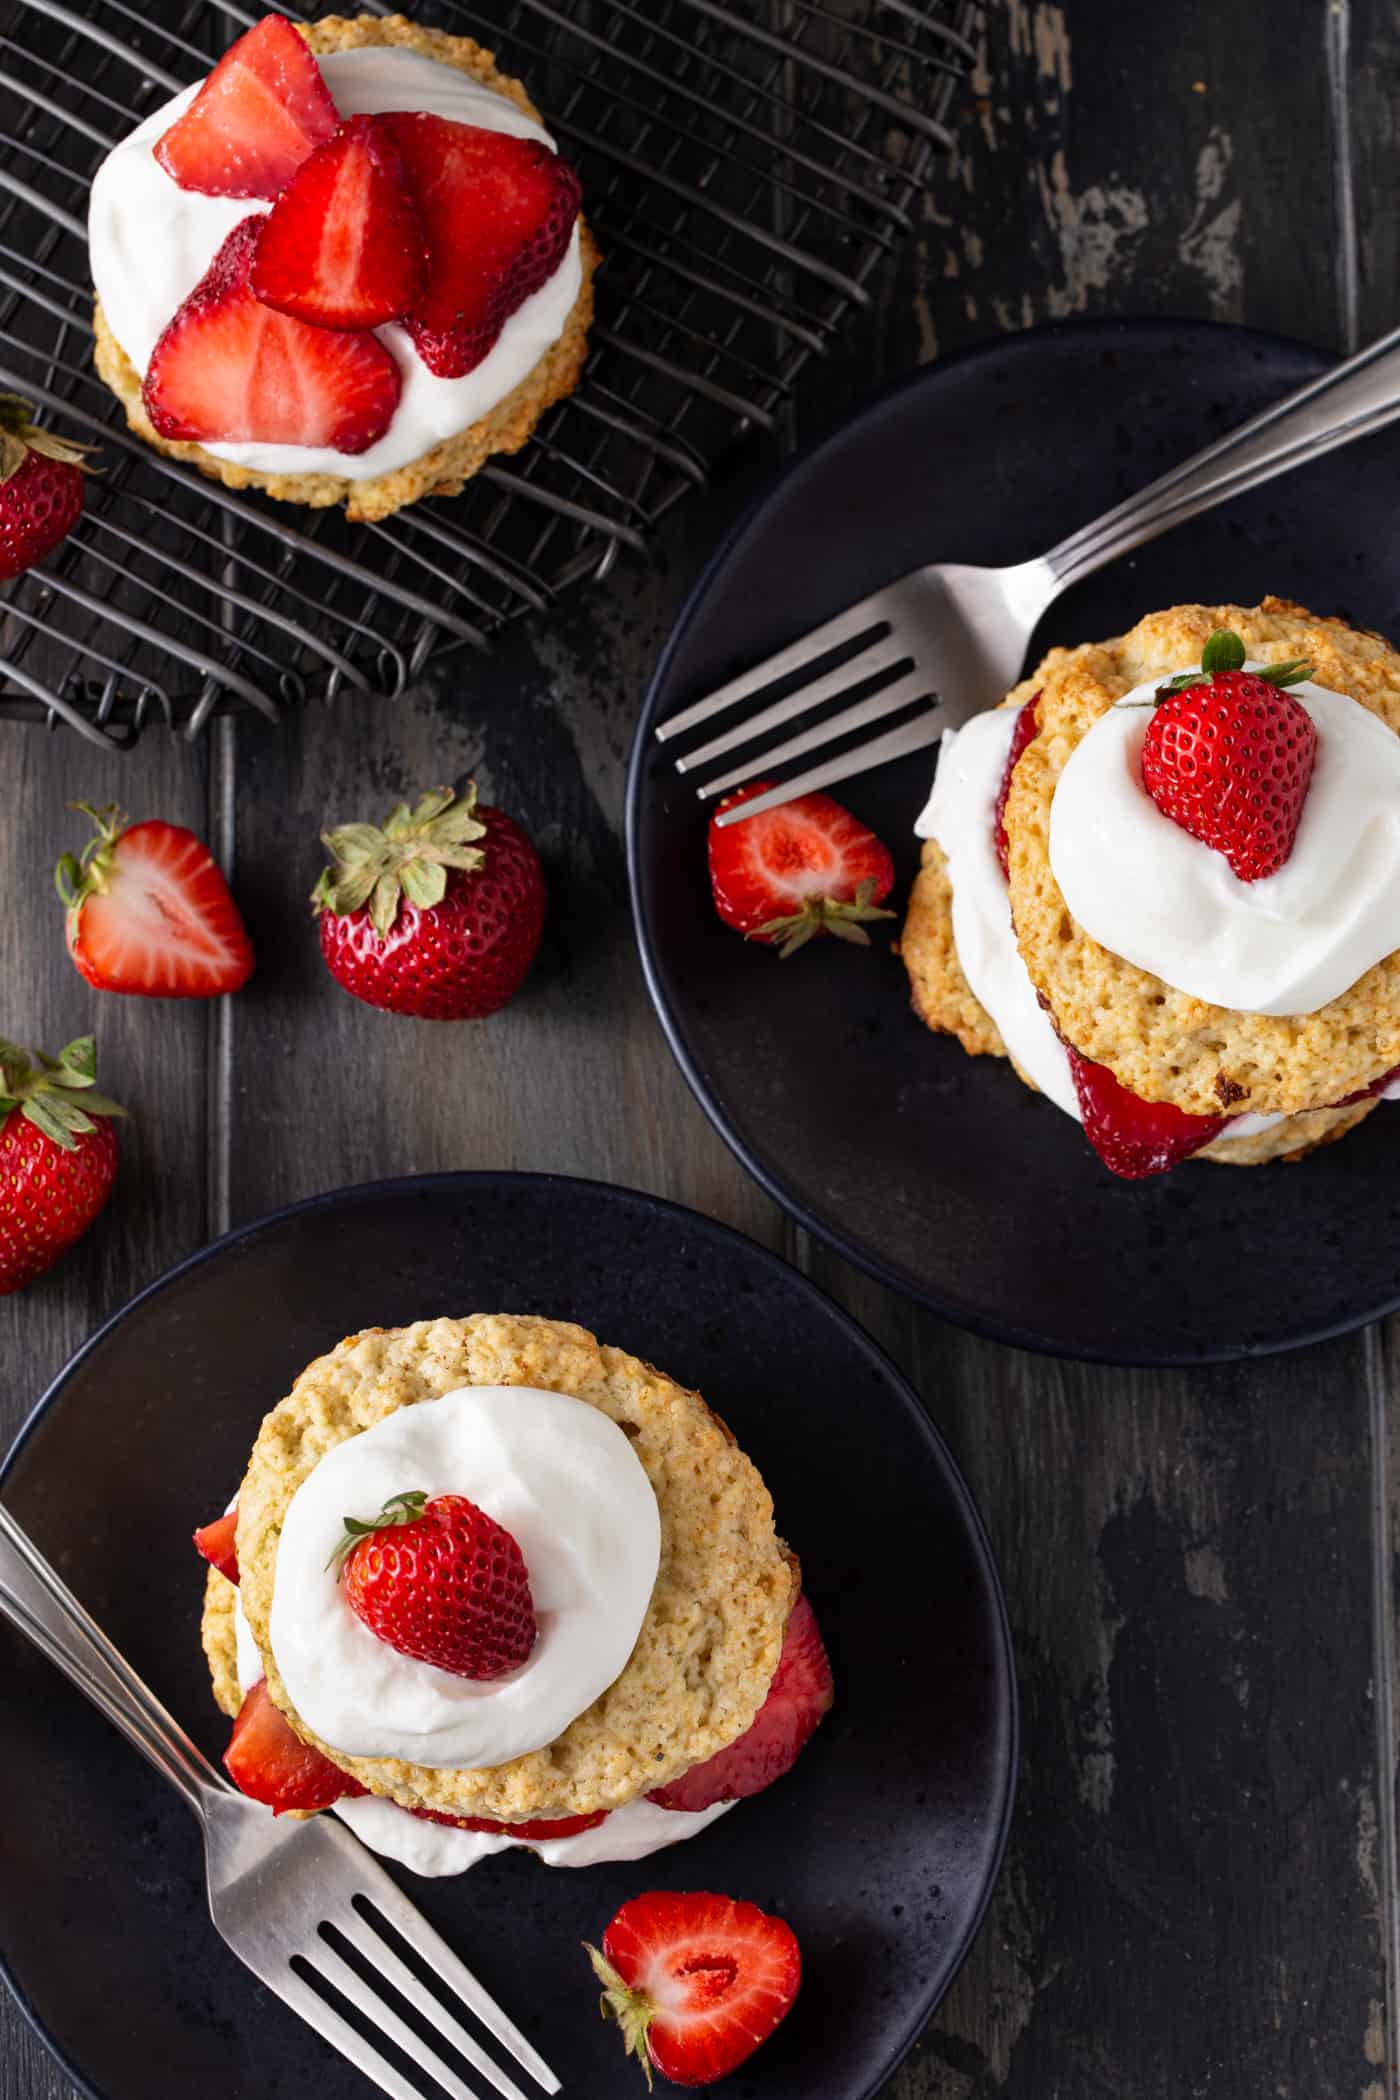 Strawberry shortcakes on black plates with forks and extra strawberries as garnish.